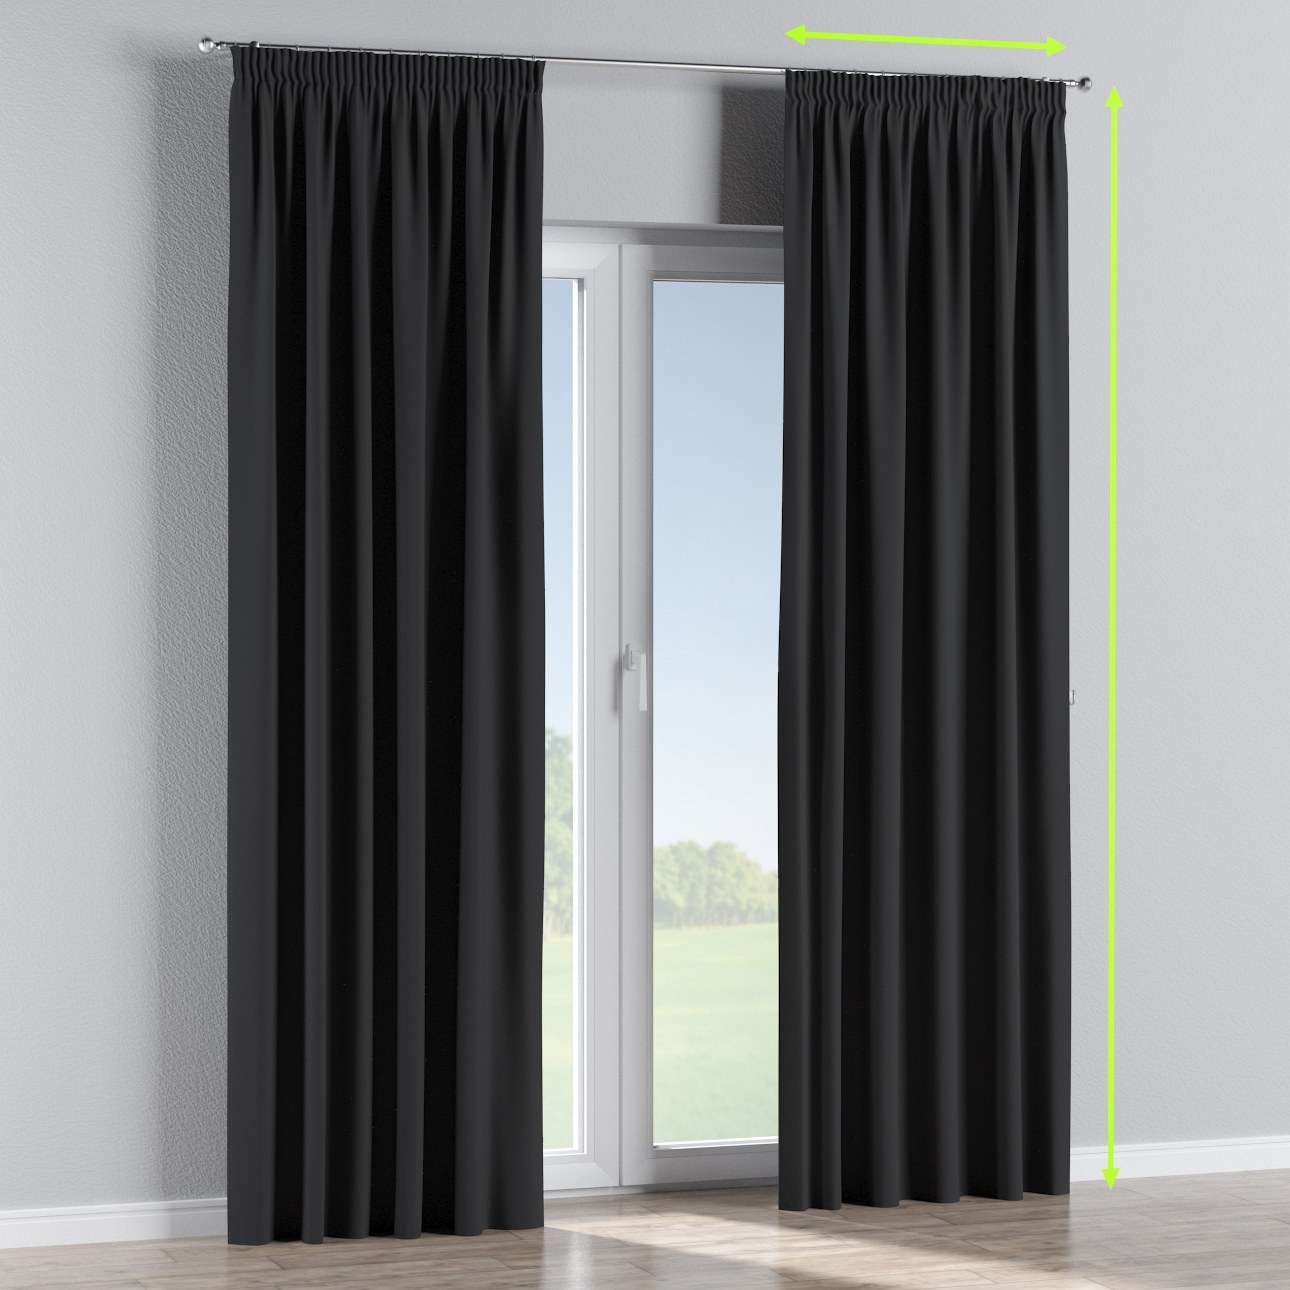 Blackout pencil pleat curtain in collection Blackout, fabric: 269-99